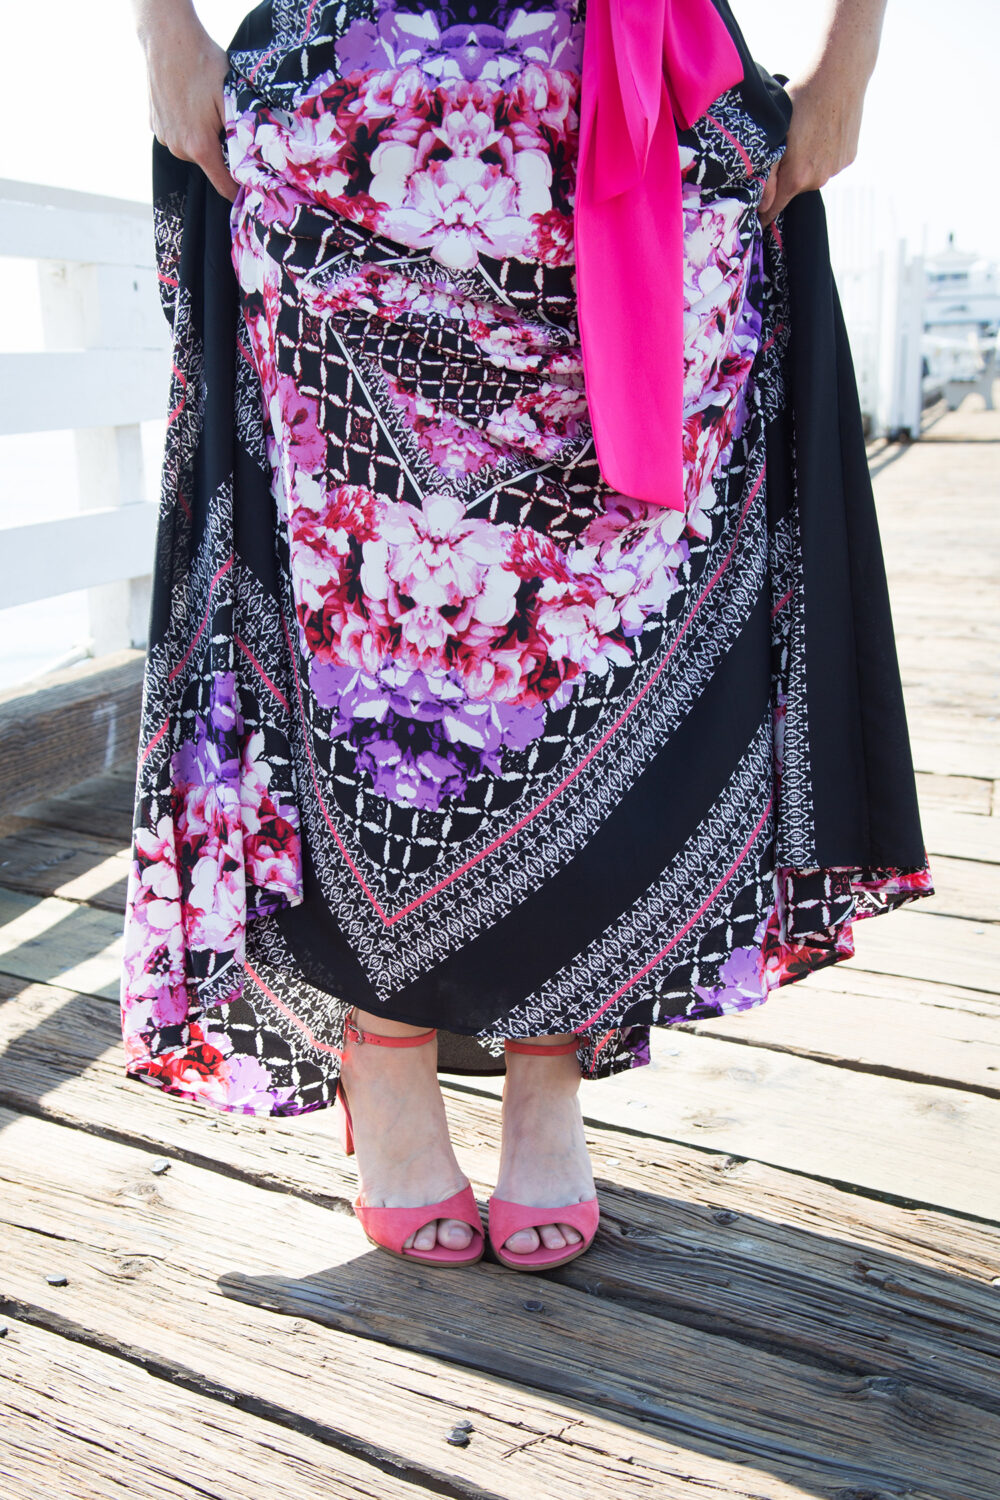 Trunk Club Review July 2017: this eliza j maxi dress is the perfect summer casual outfit base and those pink heels? STUNNING!